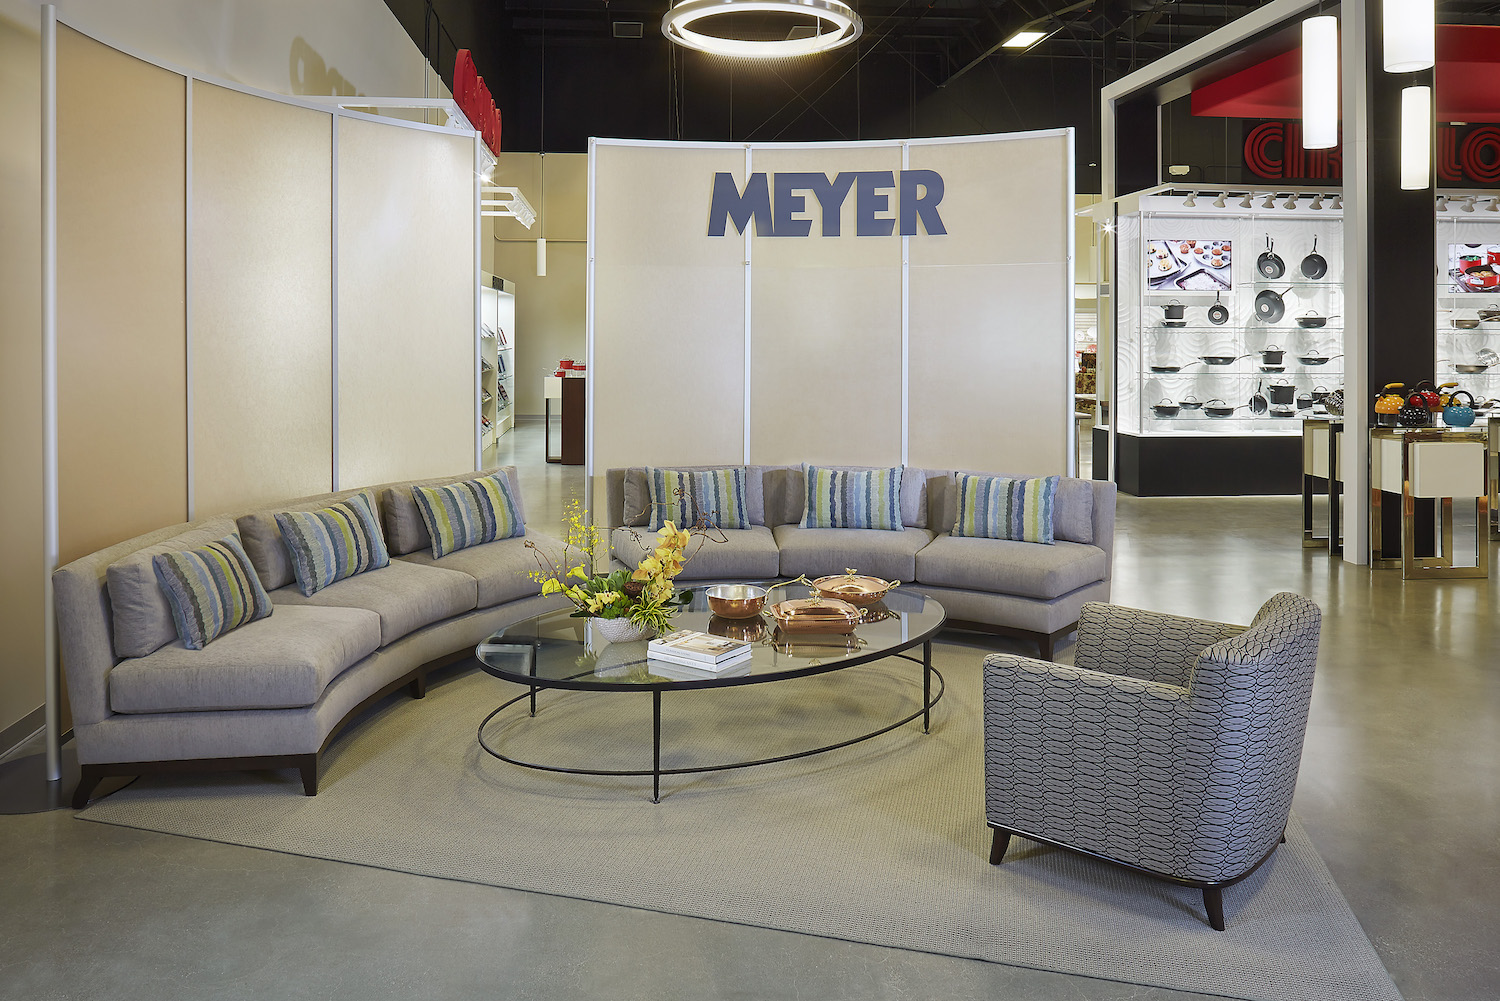 los-gatos-commercial-construction-interior-design-MeyerLounge1xFCR2